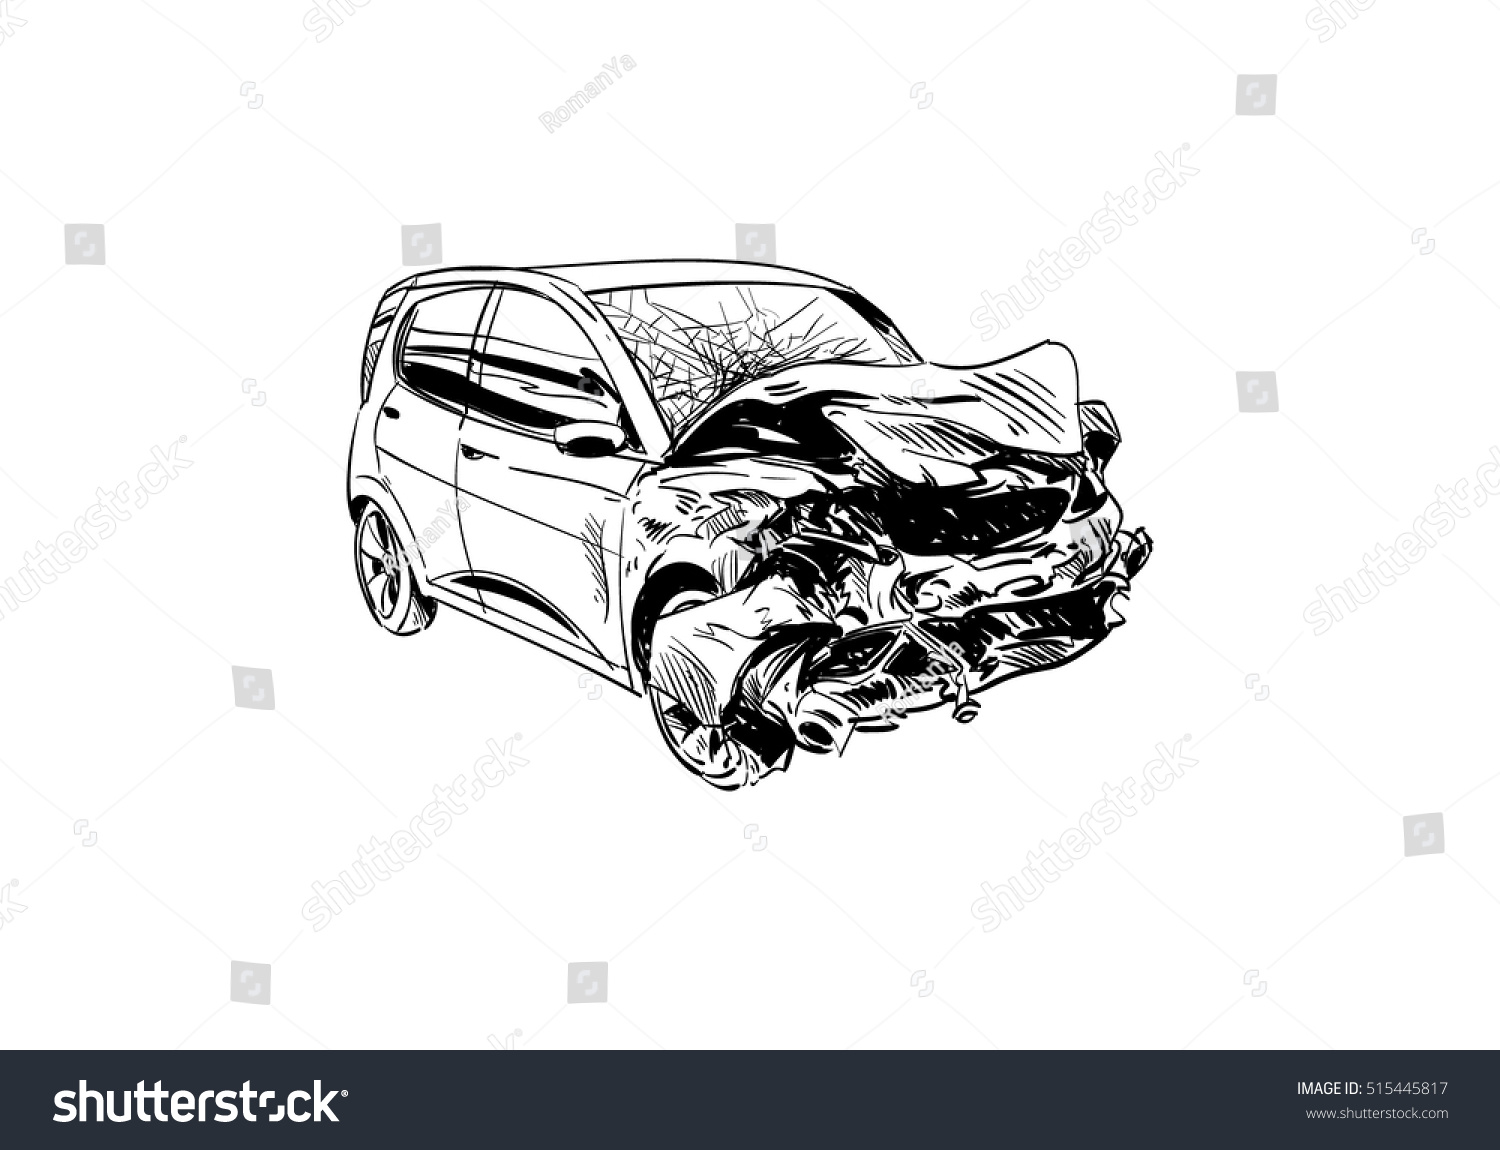 Hand Drawn Car Crash Illustration Auto Stock Vector HD (Royalty Free ...